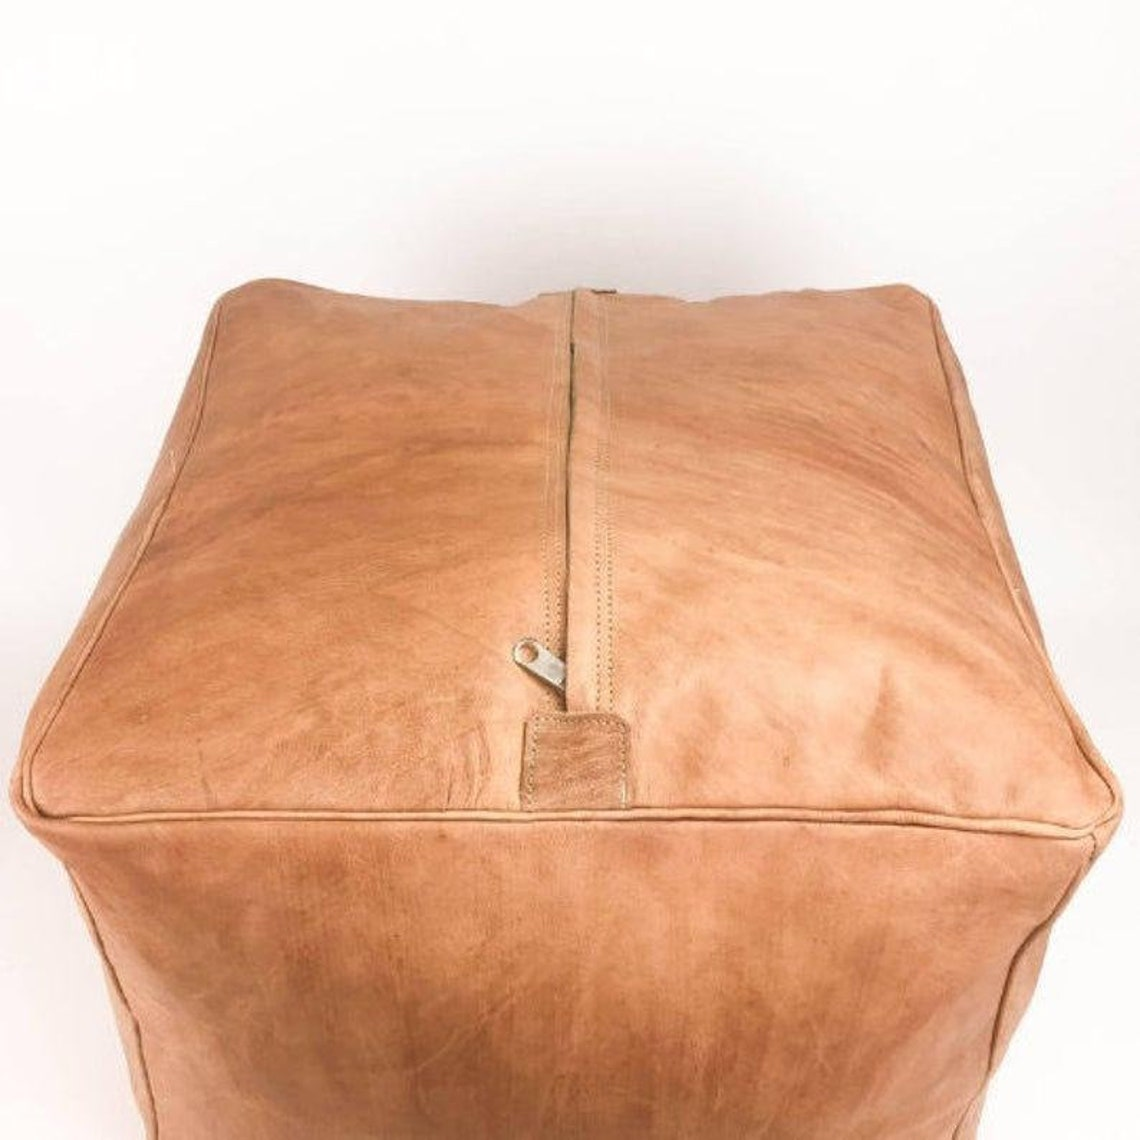 Square pouf. set of 2 Moroccan pouf, leather Pouf, ottoman pouf handmade pouf footstool